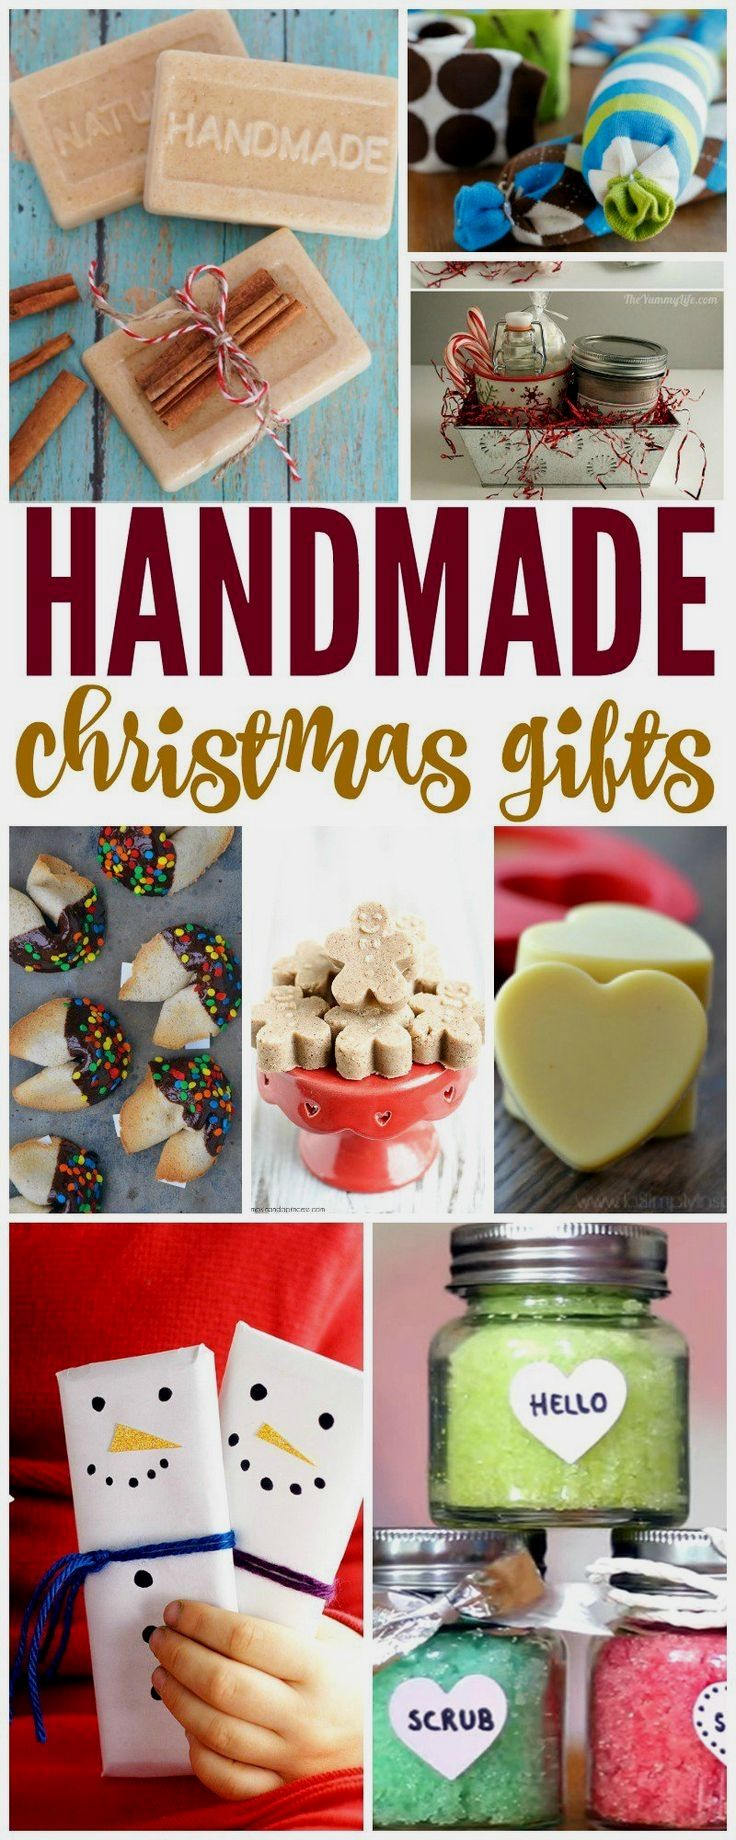 20 Handmade Christmas Gifts You Can Make For Less Than 5 In 2020 Homemade Christmas Gifts Christmas Gift You Can Make Diy Gifts Cheap